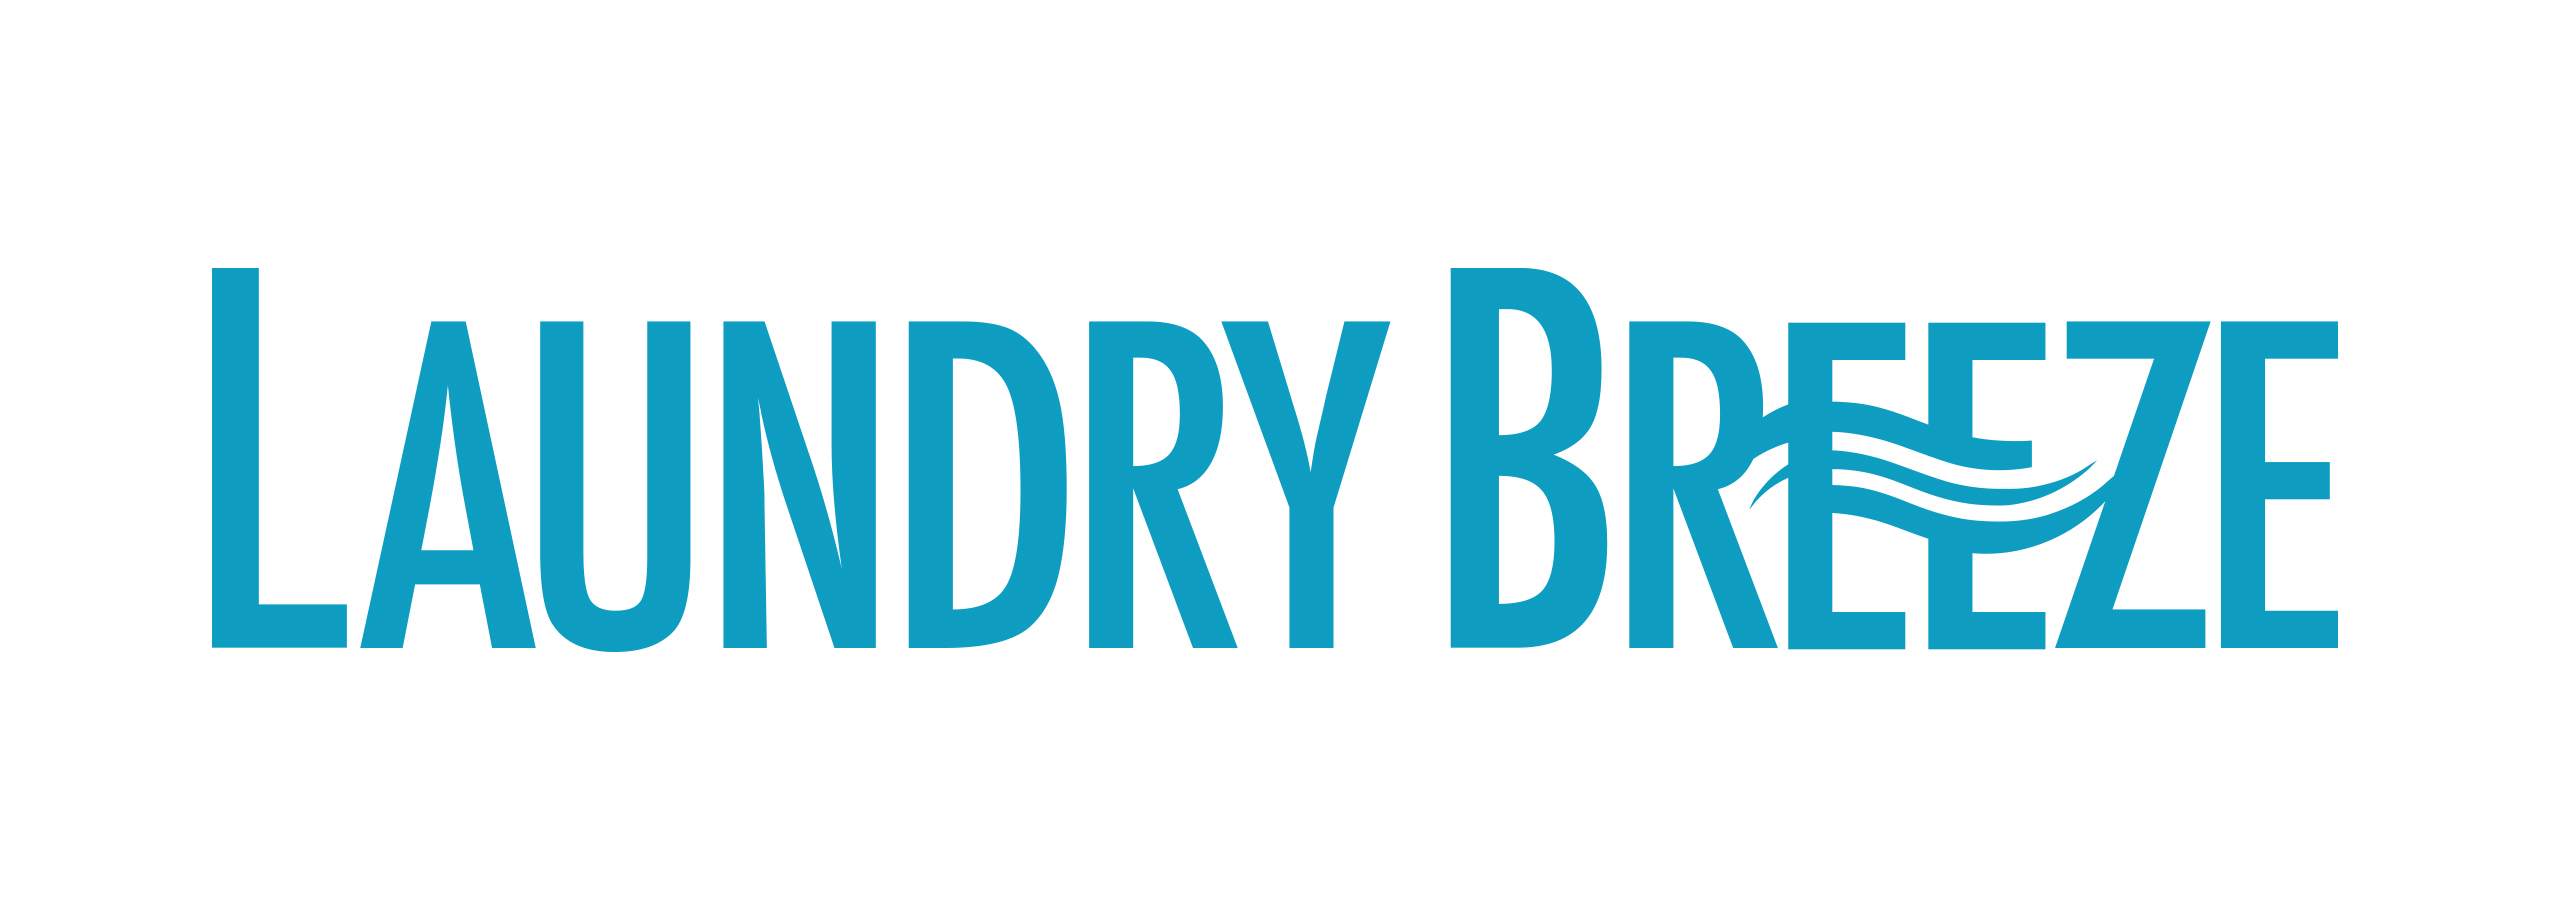 Laundry Breeze - Horizontal - Logo